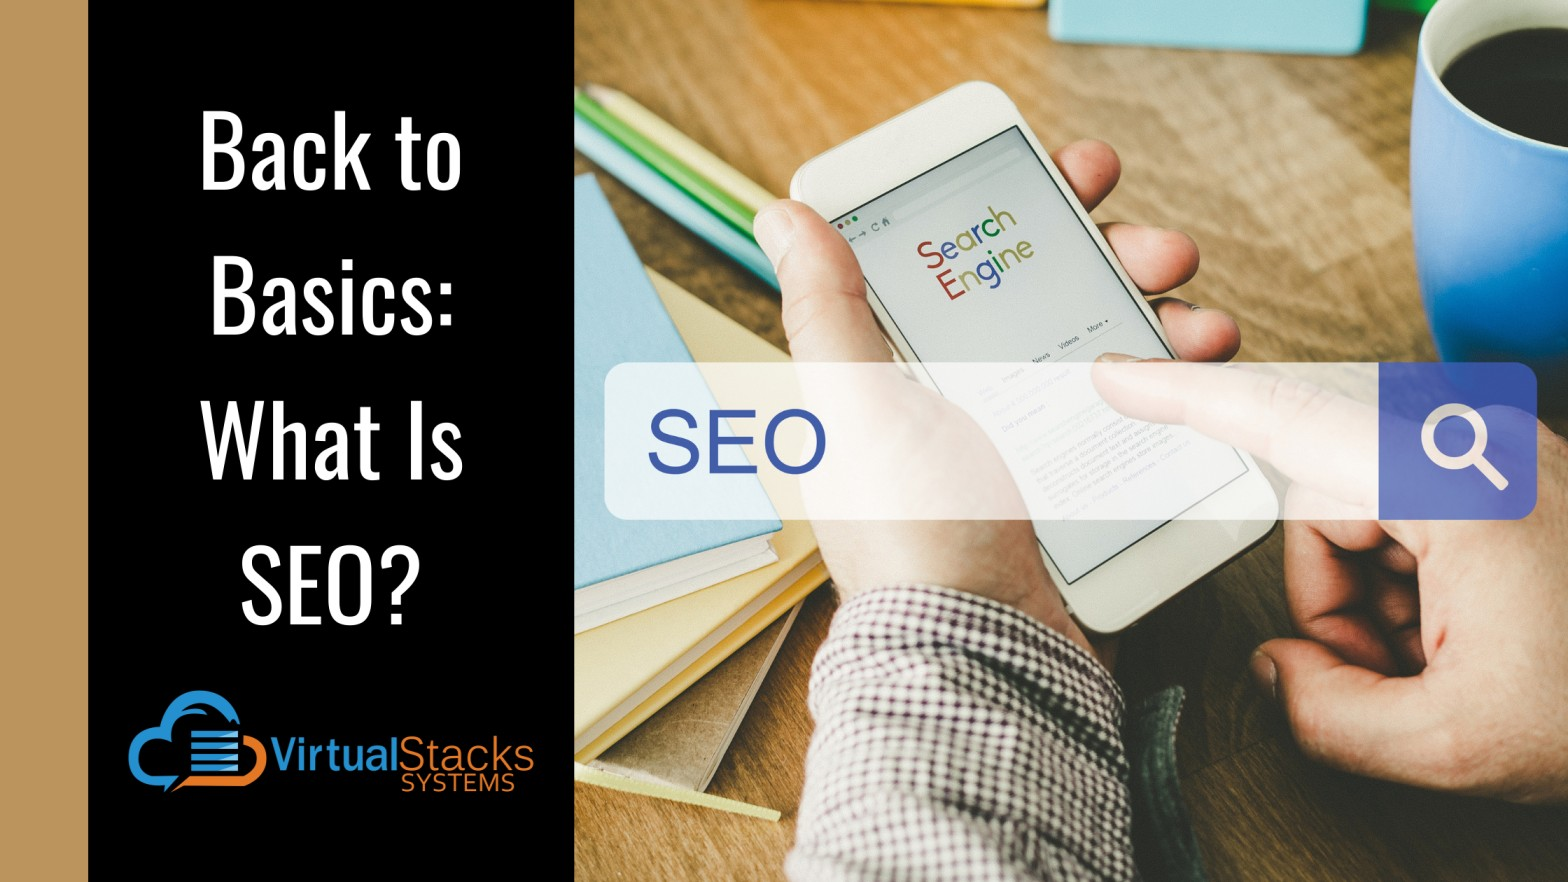 Back to Basics: What Is SEO?